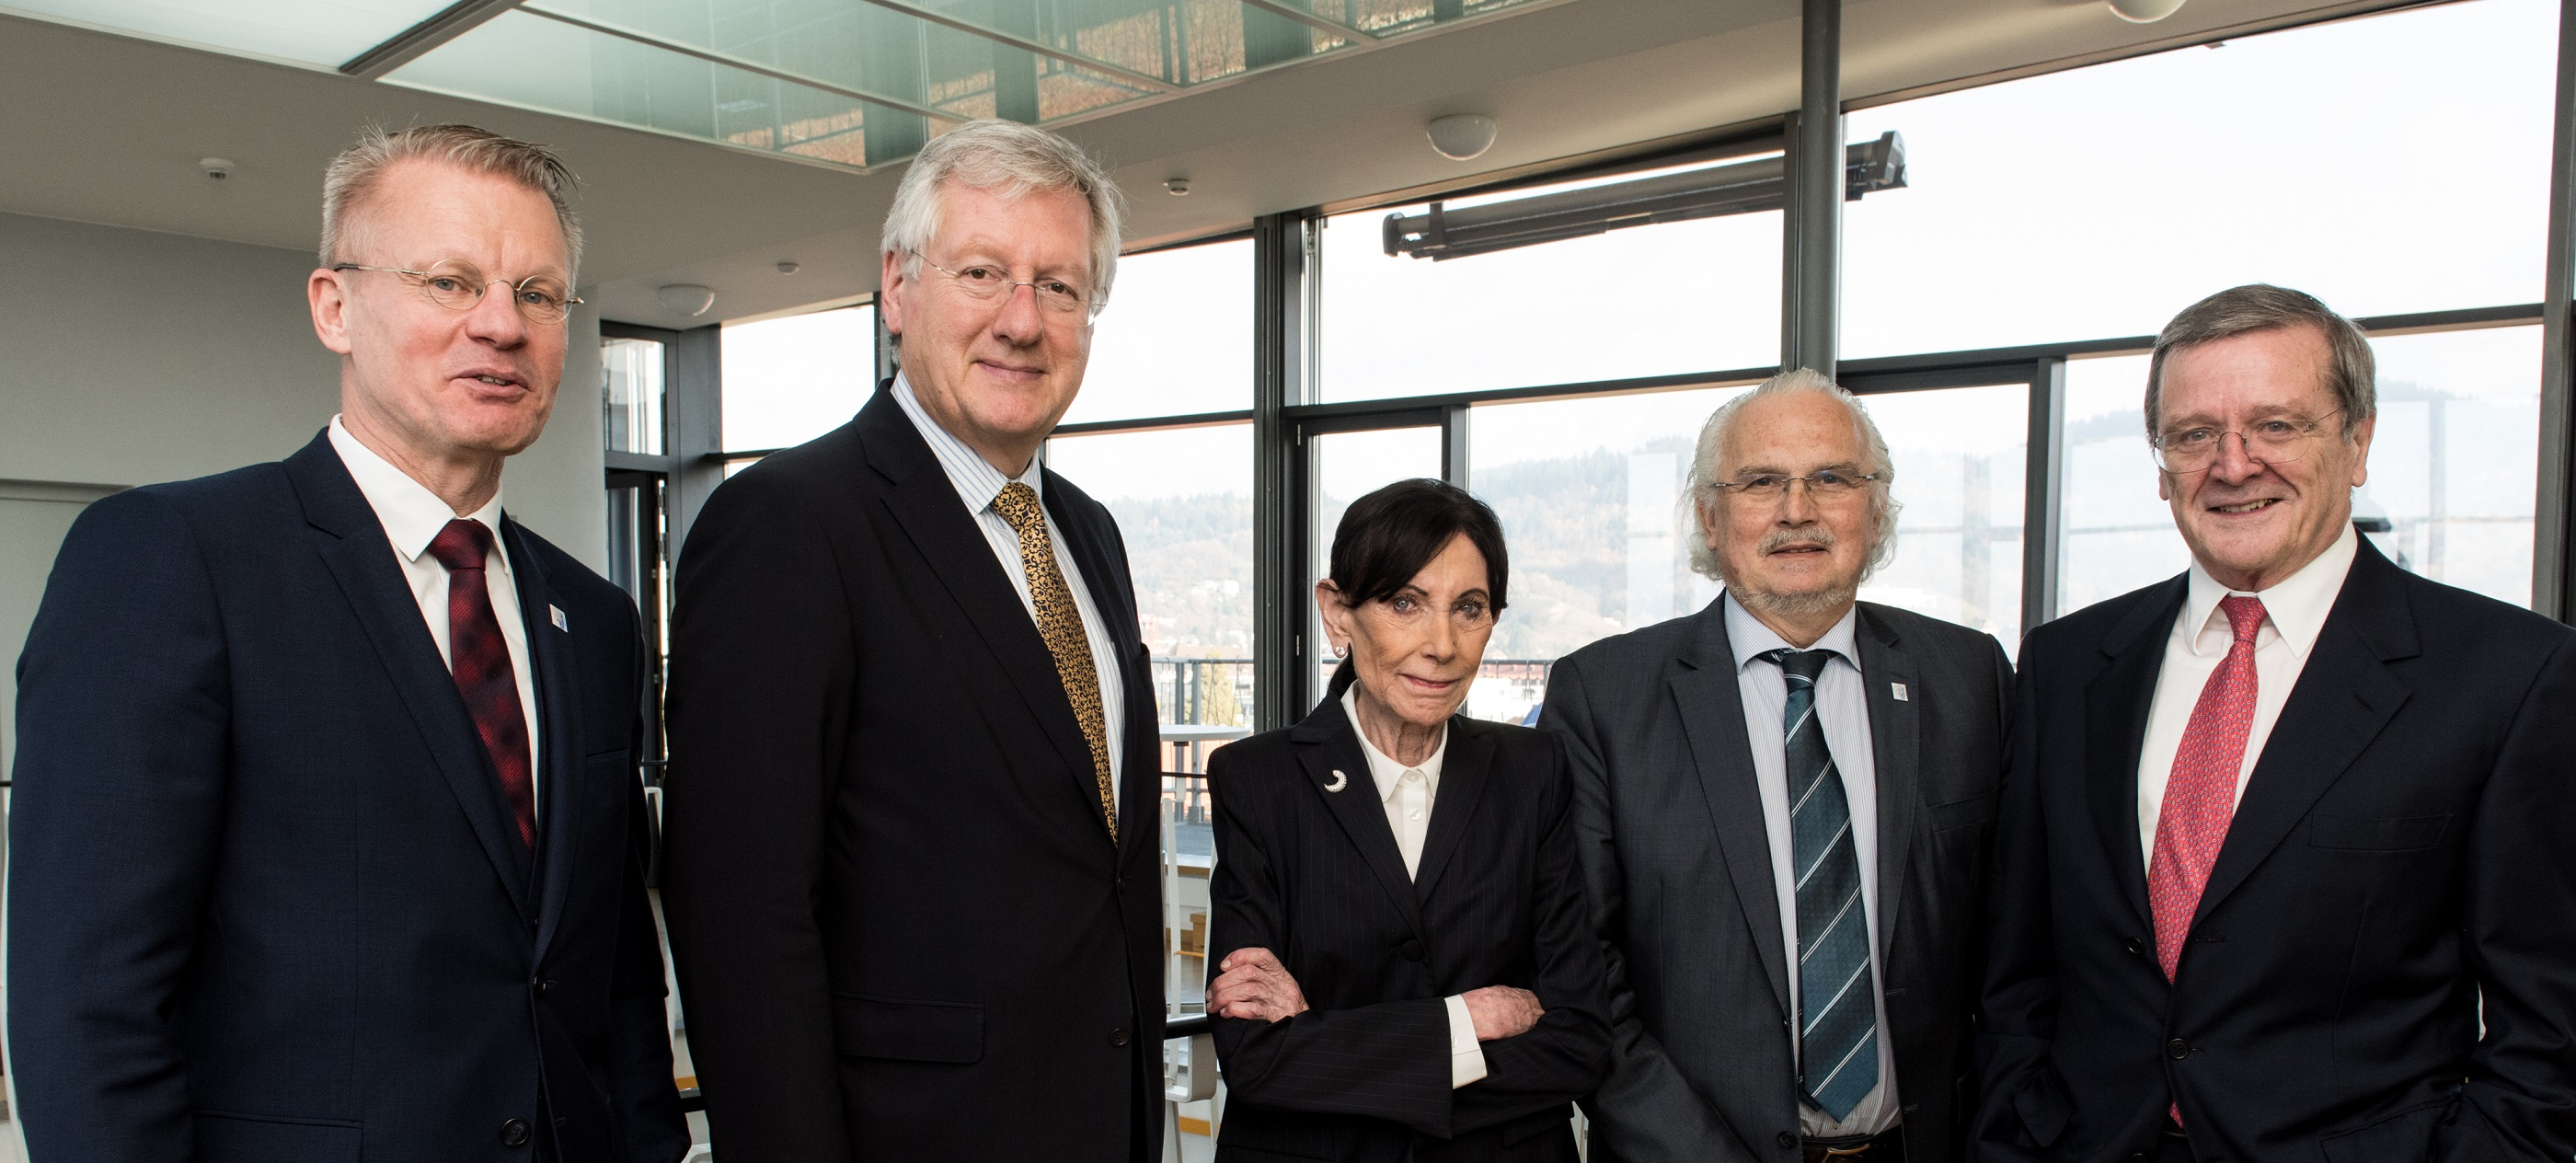 Prof. Dr. Stefan Hiermaier, Founding Director of INATECH, Rector Prof. Dr. Hans-Jochen Schiewer, founder Eva Mayr-Stihl, Vice-Chancellor Prof. Dr. Gunther Neuhaus and Robert Mayr, board member of Eva Mayr-Stihl Foundation (Photo: Patrick Seeger)